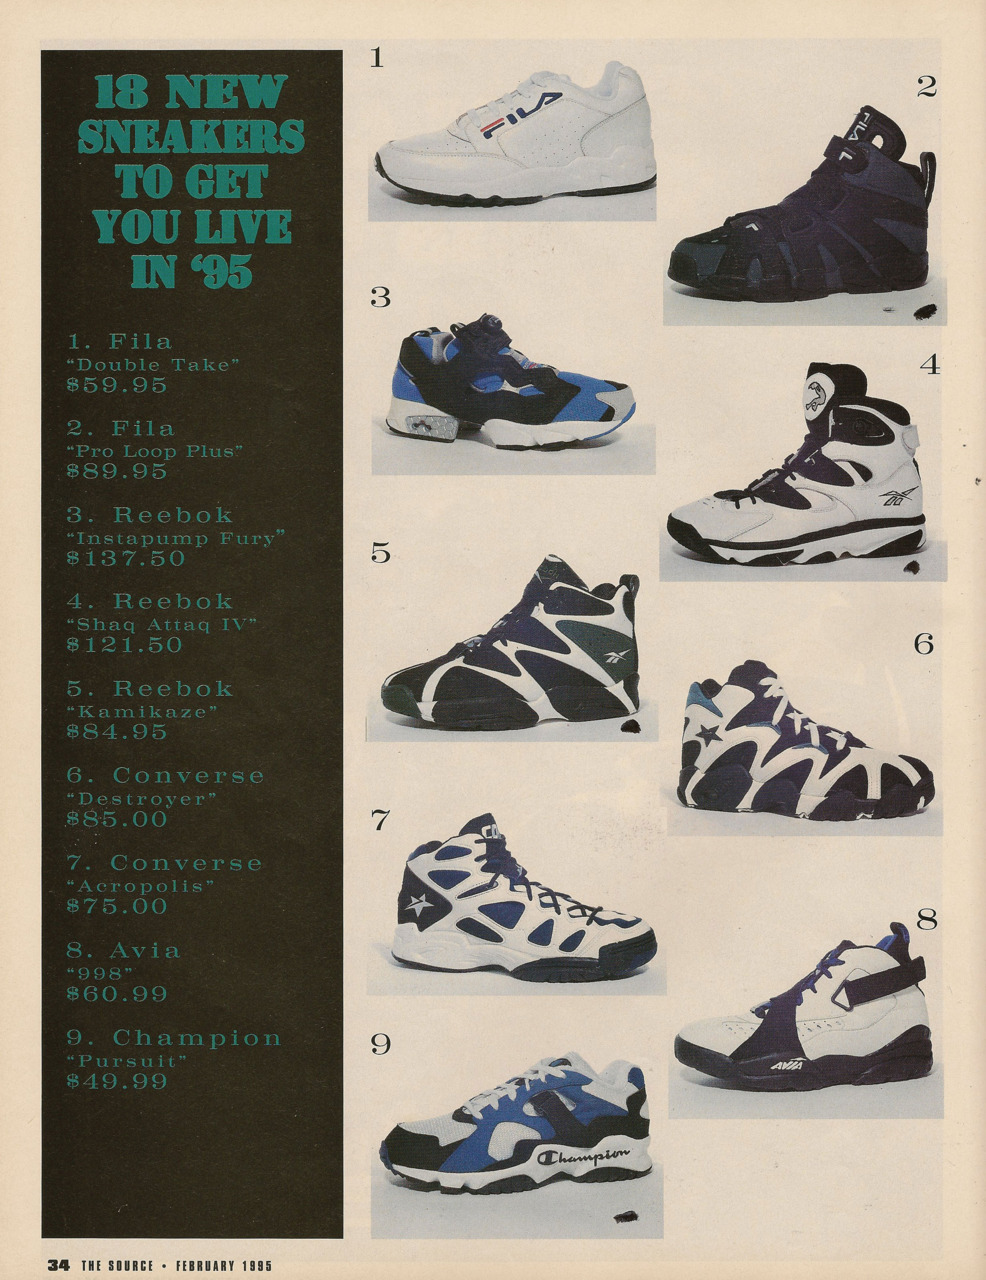 18 New Sneakers To Get You Live In '95.jpg